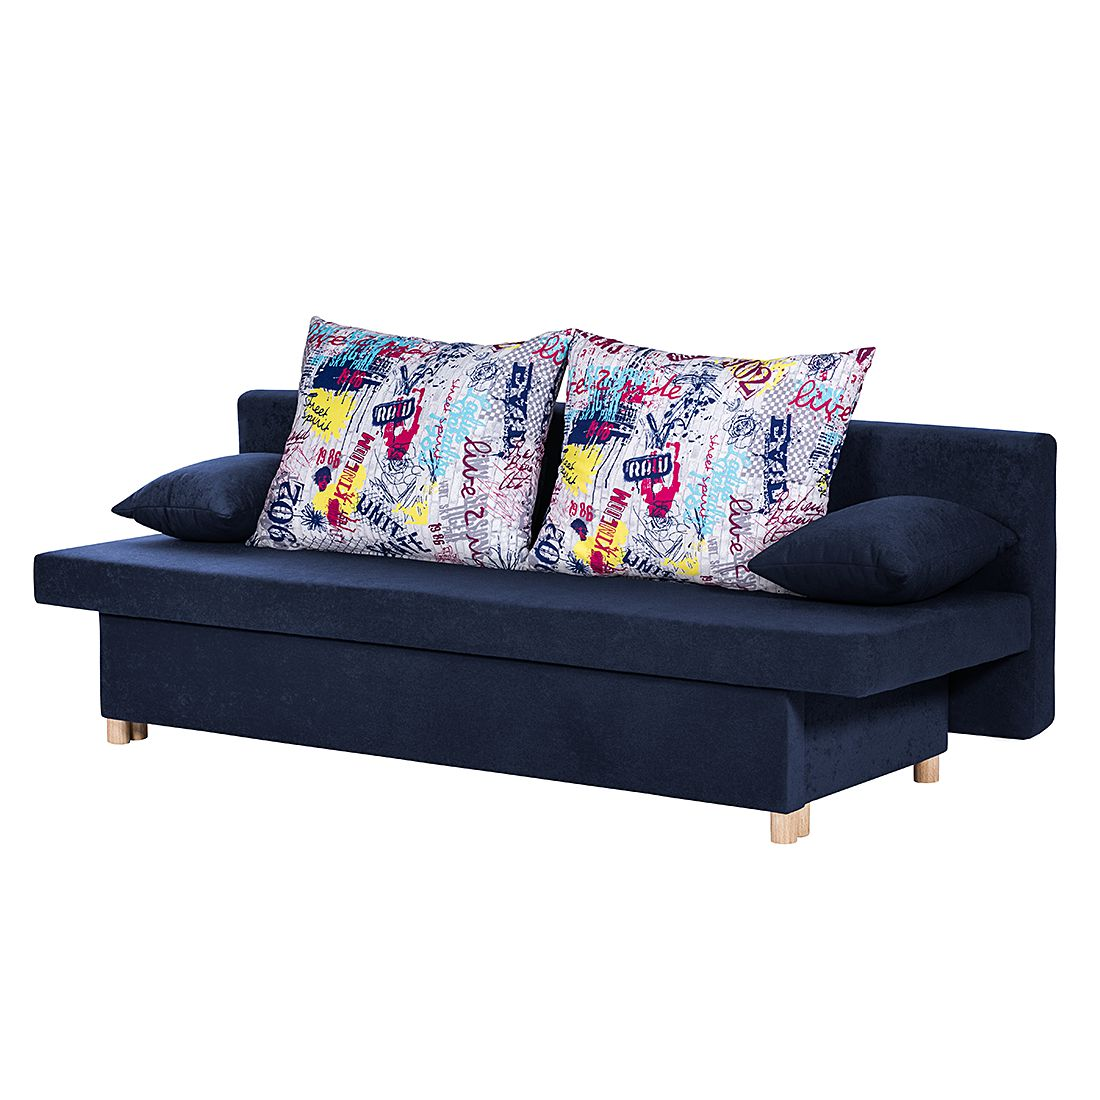 Schlafsofa Homely – Microfaser Blau, mooved kaufen